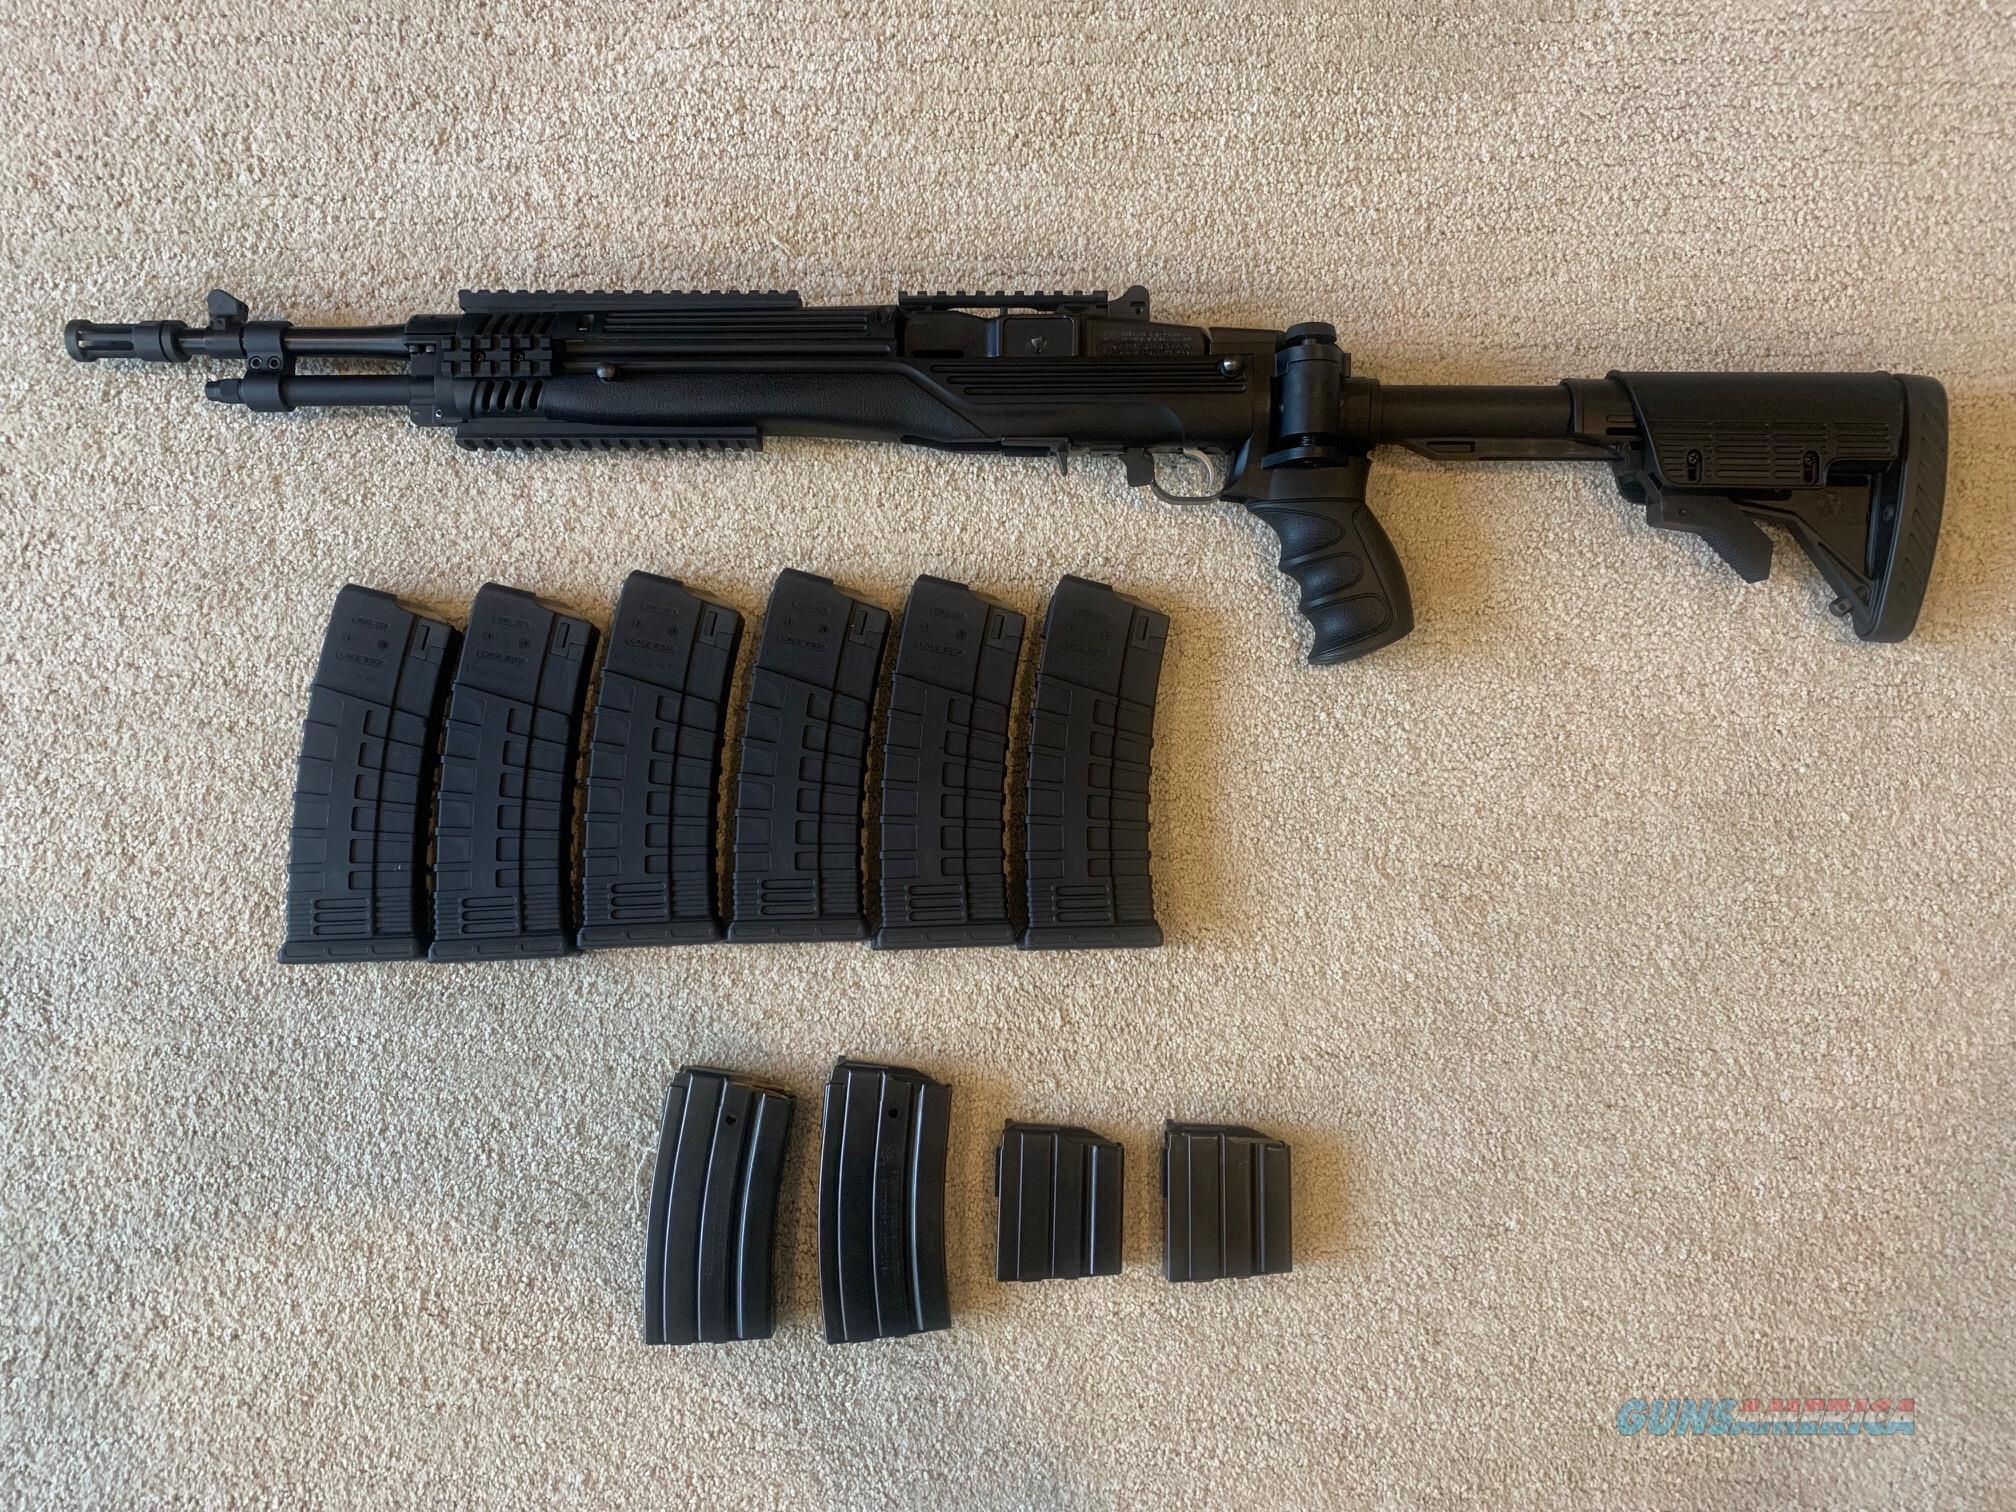 Ruger Mini-14 582 Series ATI Stock  Guns > Rifles > Ruger Rifles > Mini-14 Type